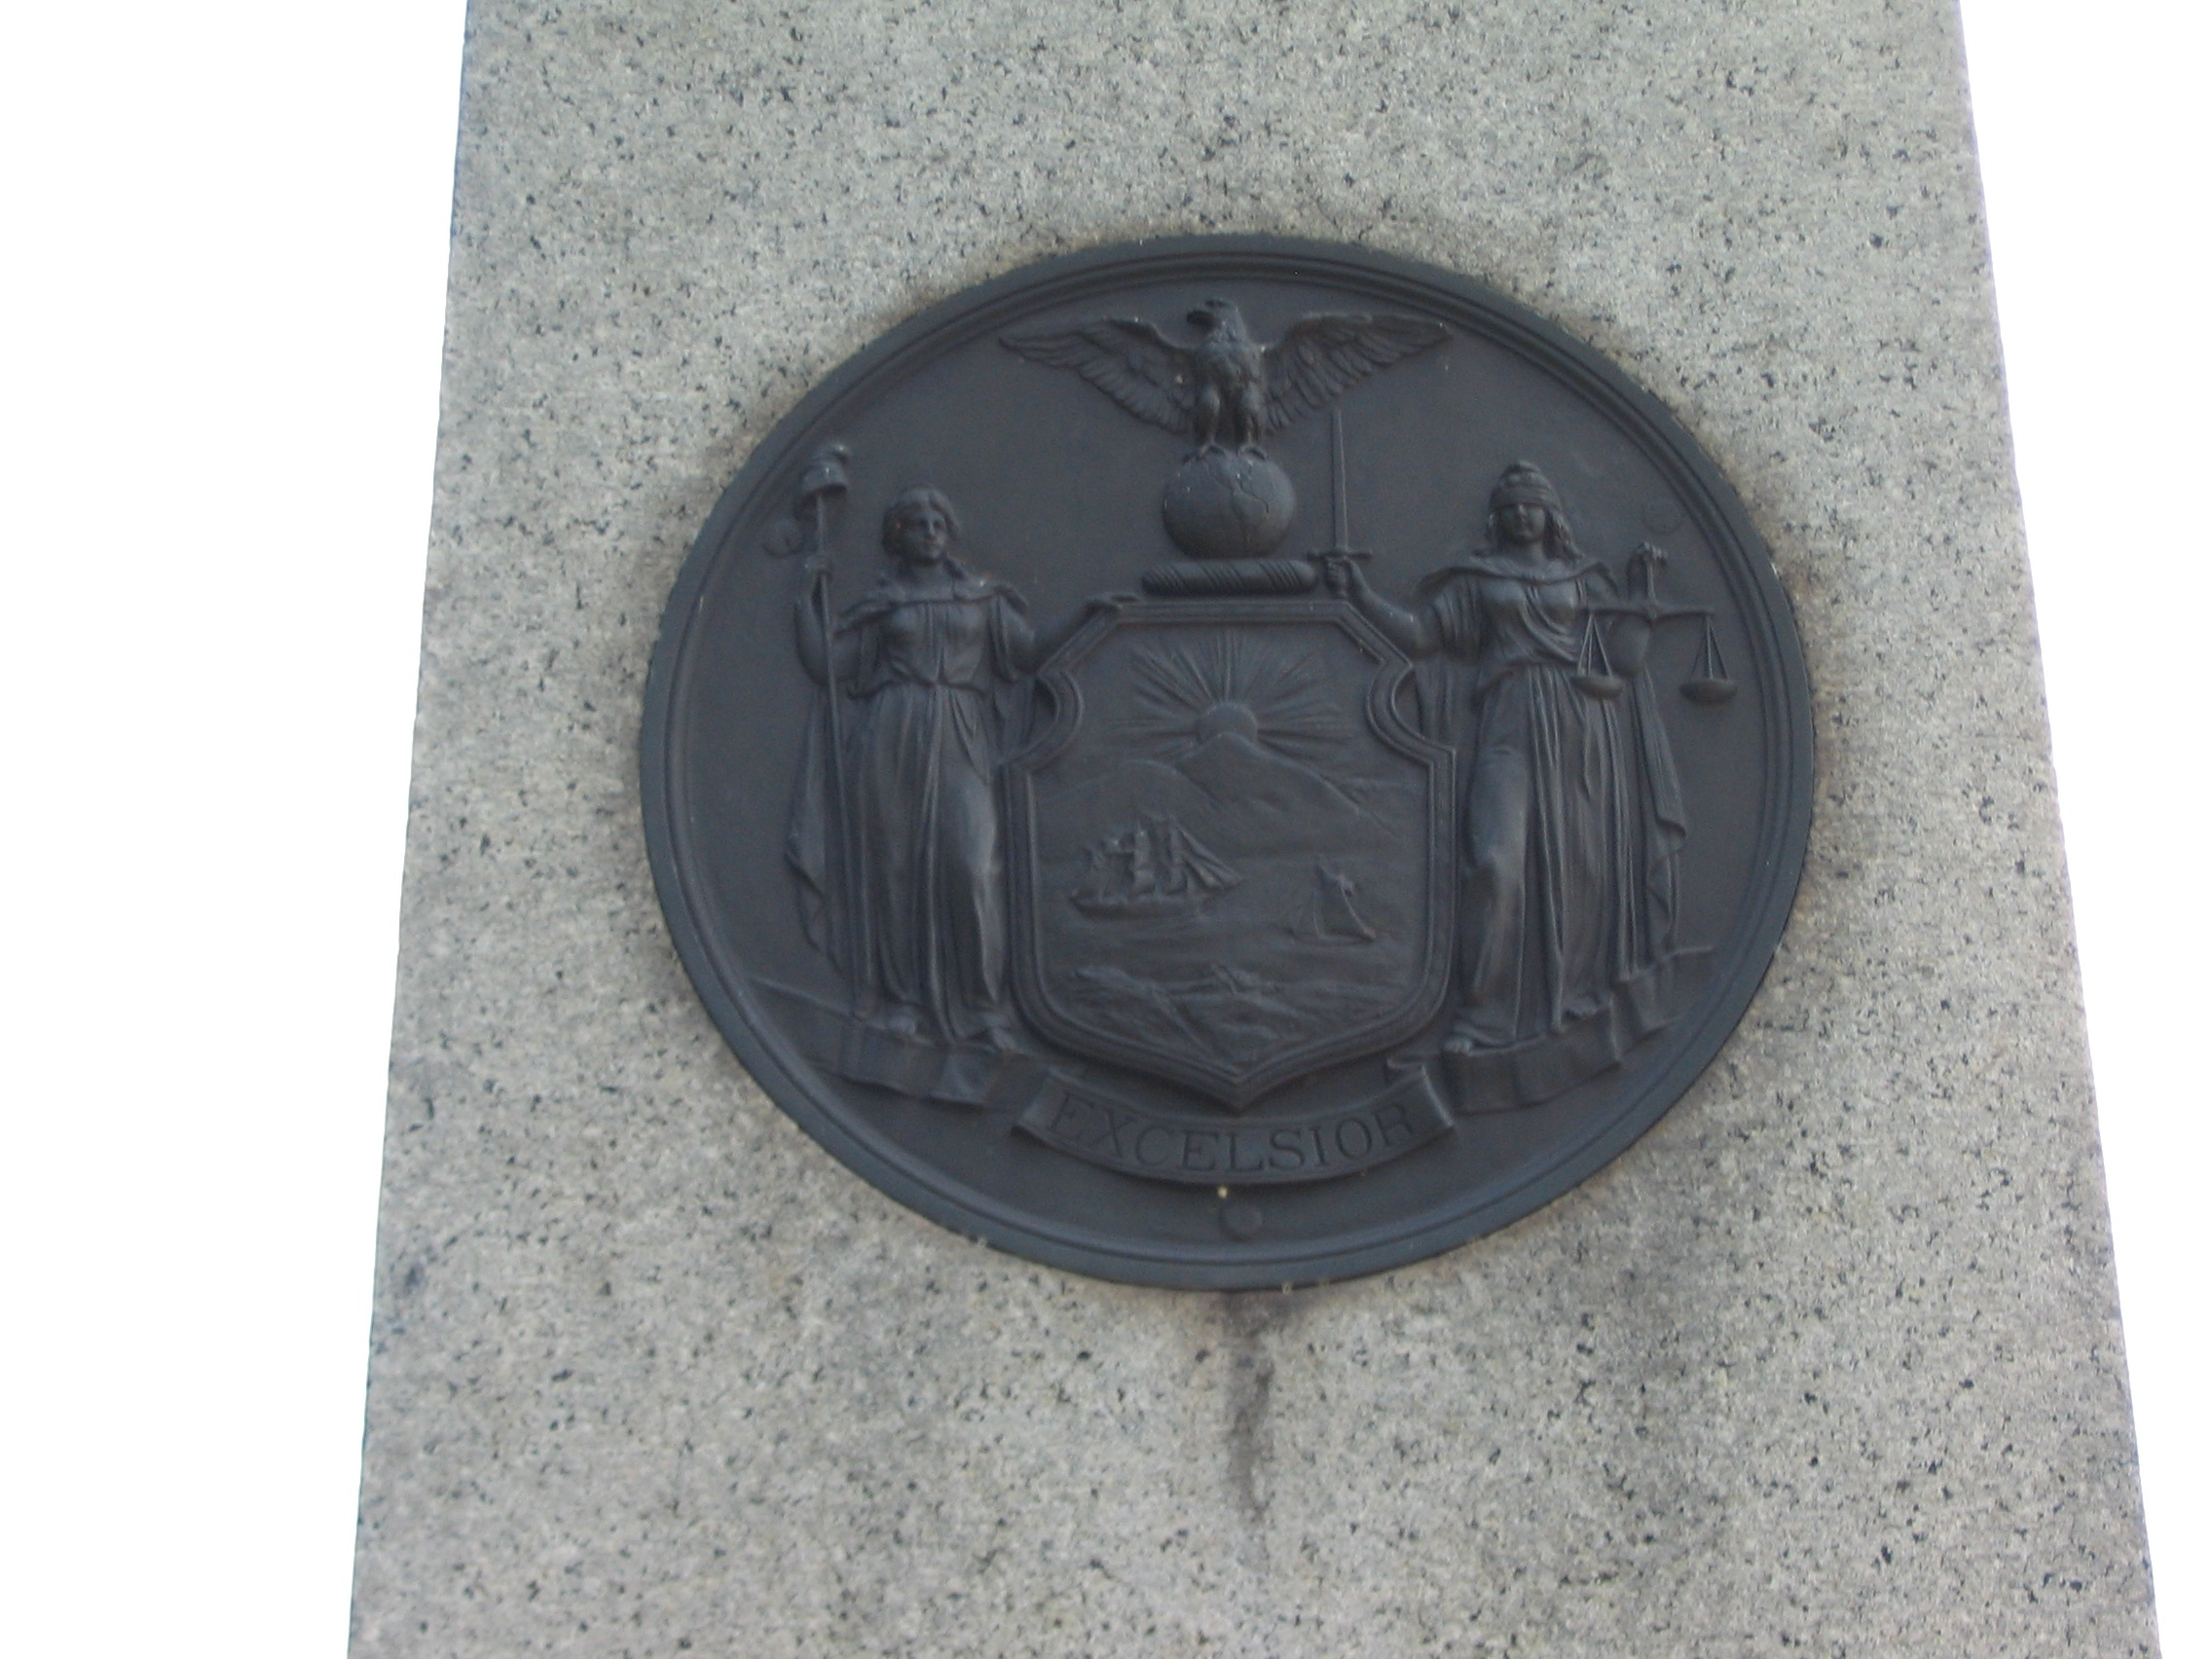 State Seal on the Monument